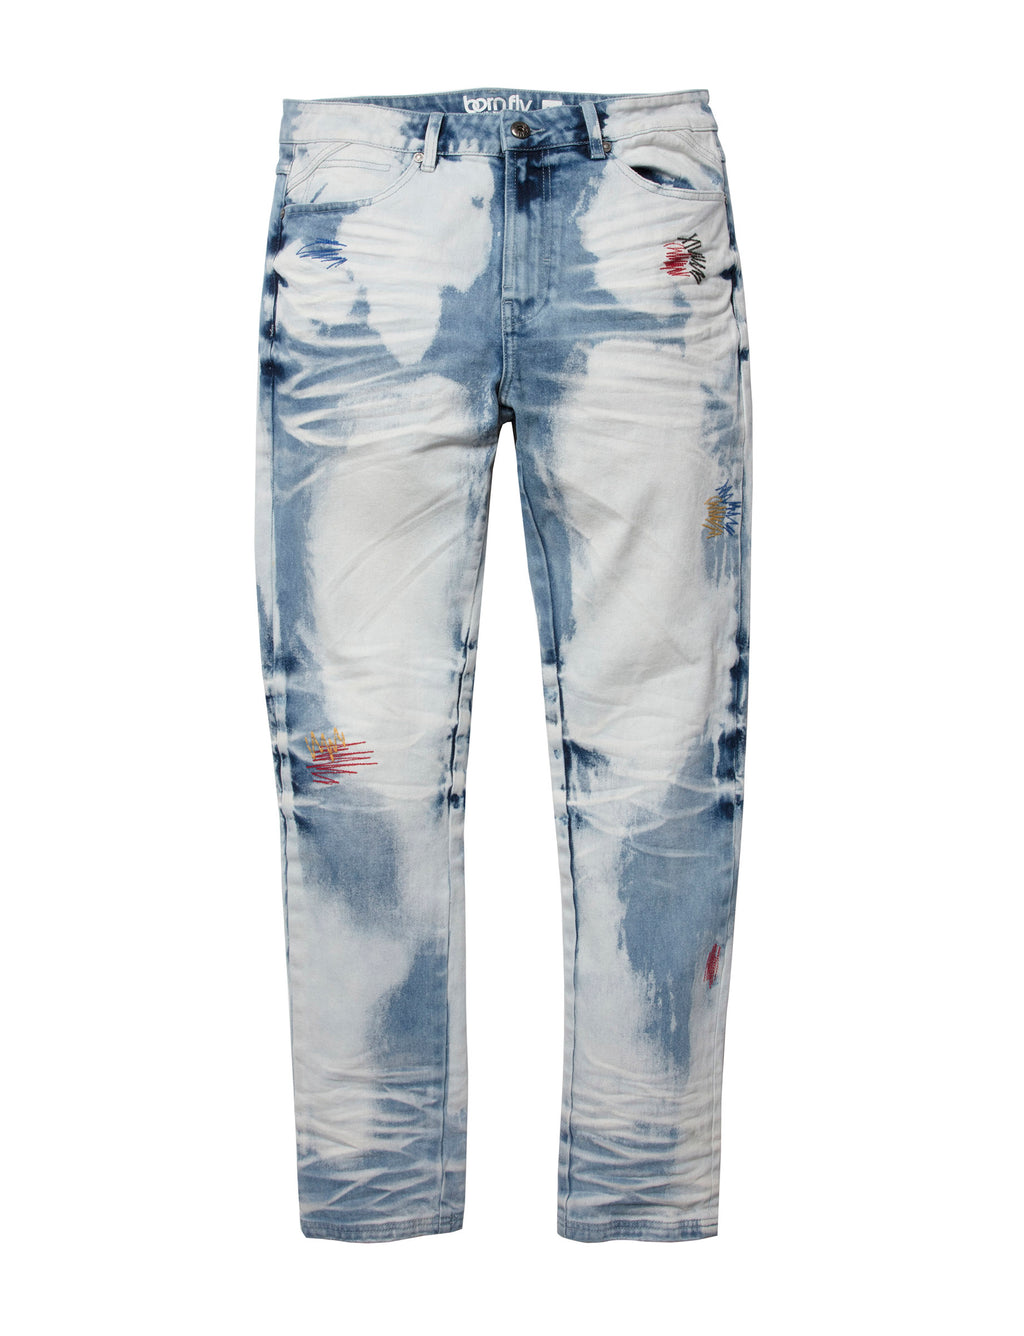 Loopy Stretch Jean Lsw